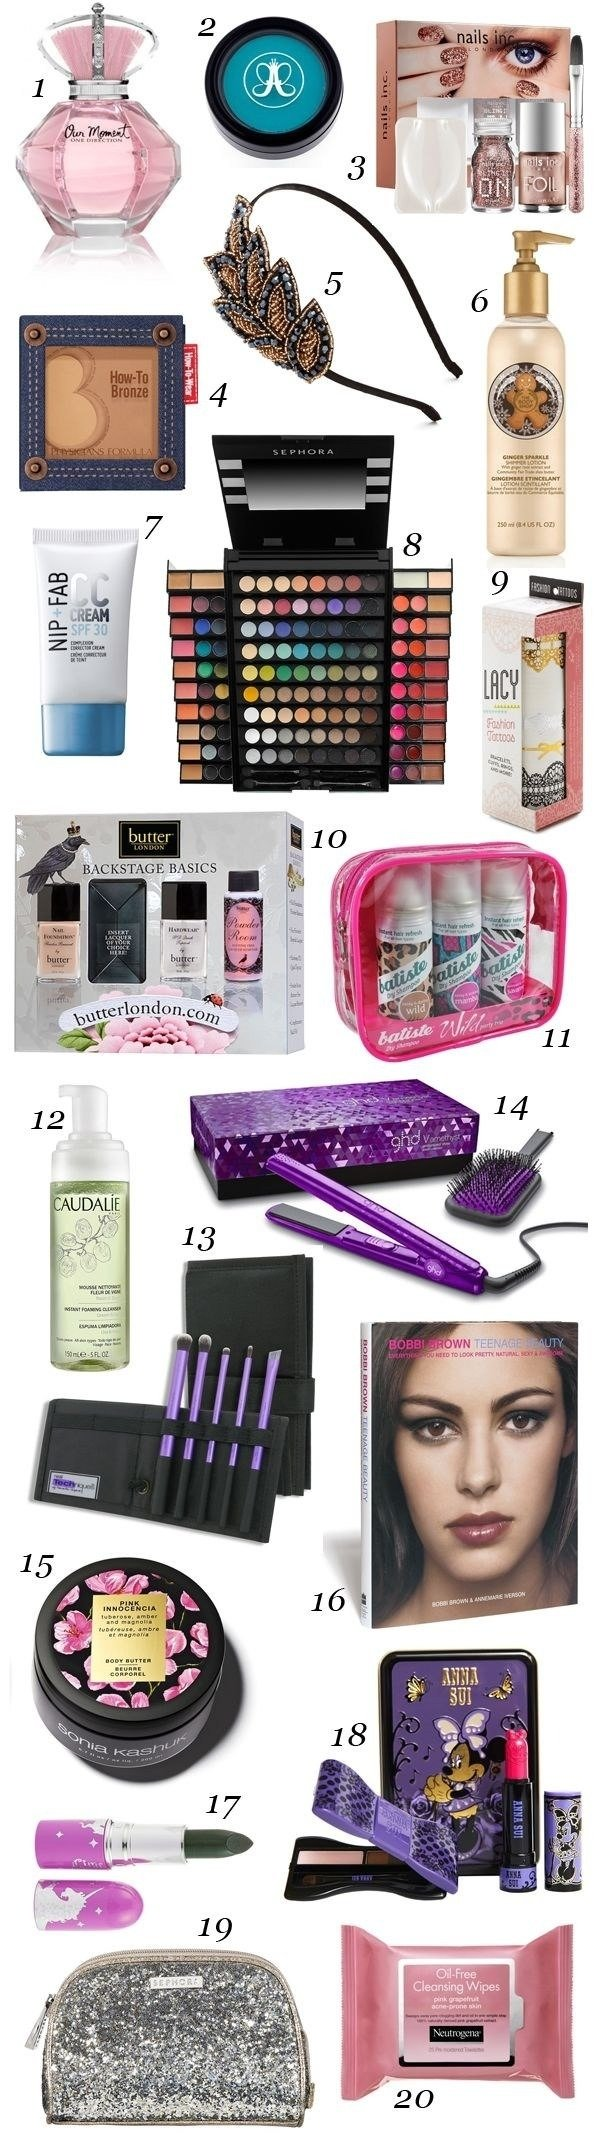 10 Nice Gift Ideas For 13 Year Old Daughter what to get a 16 year old girl for christmas eknom jo 1 2021